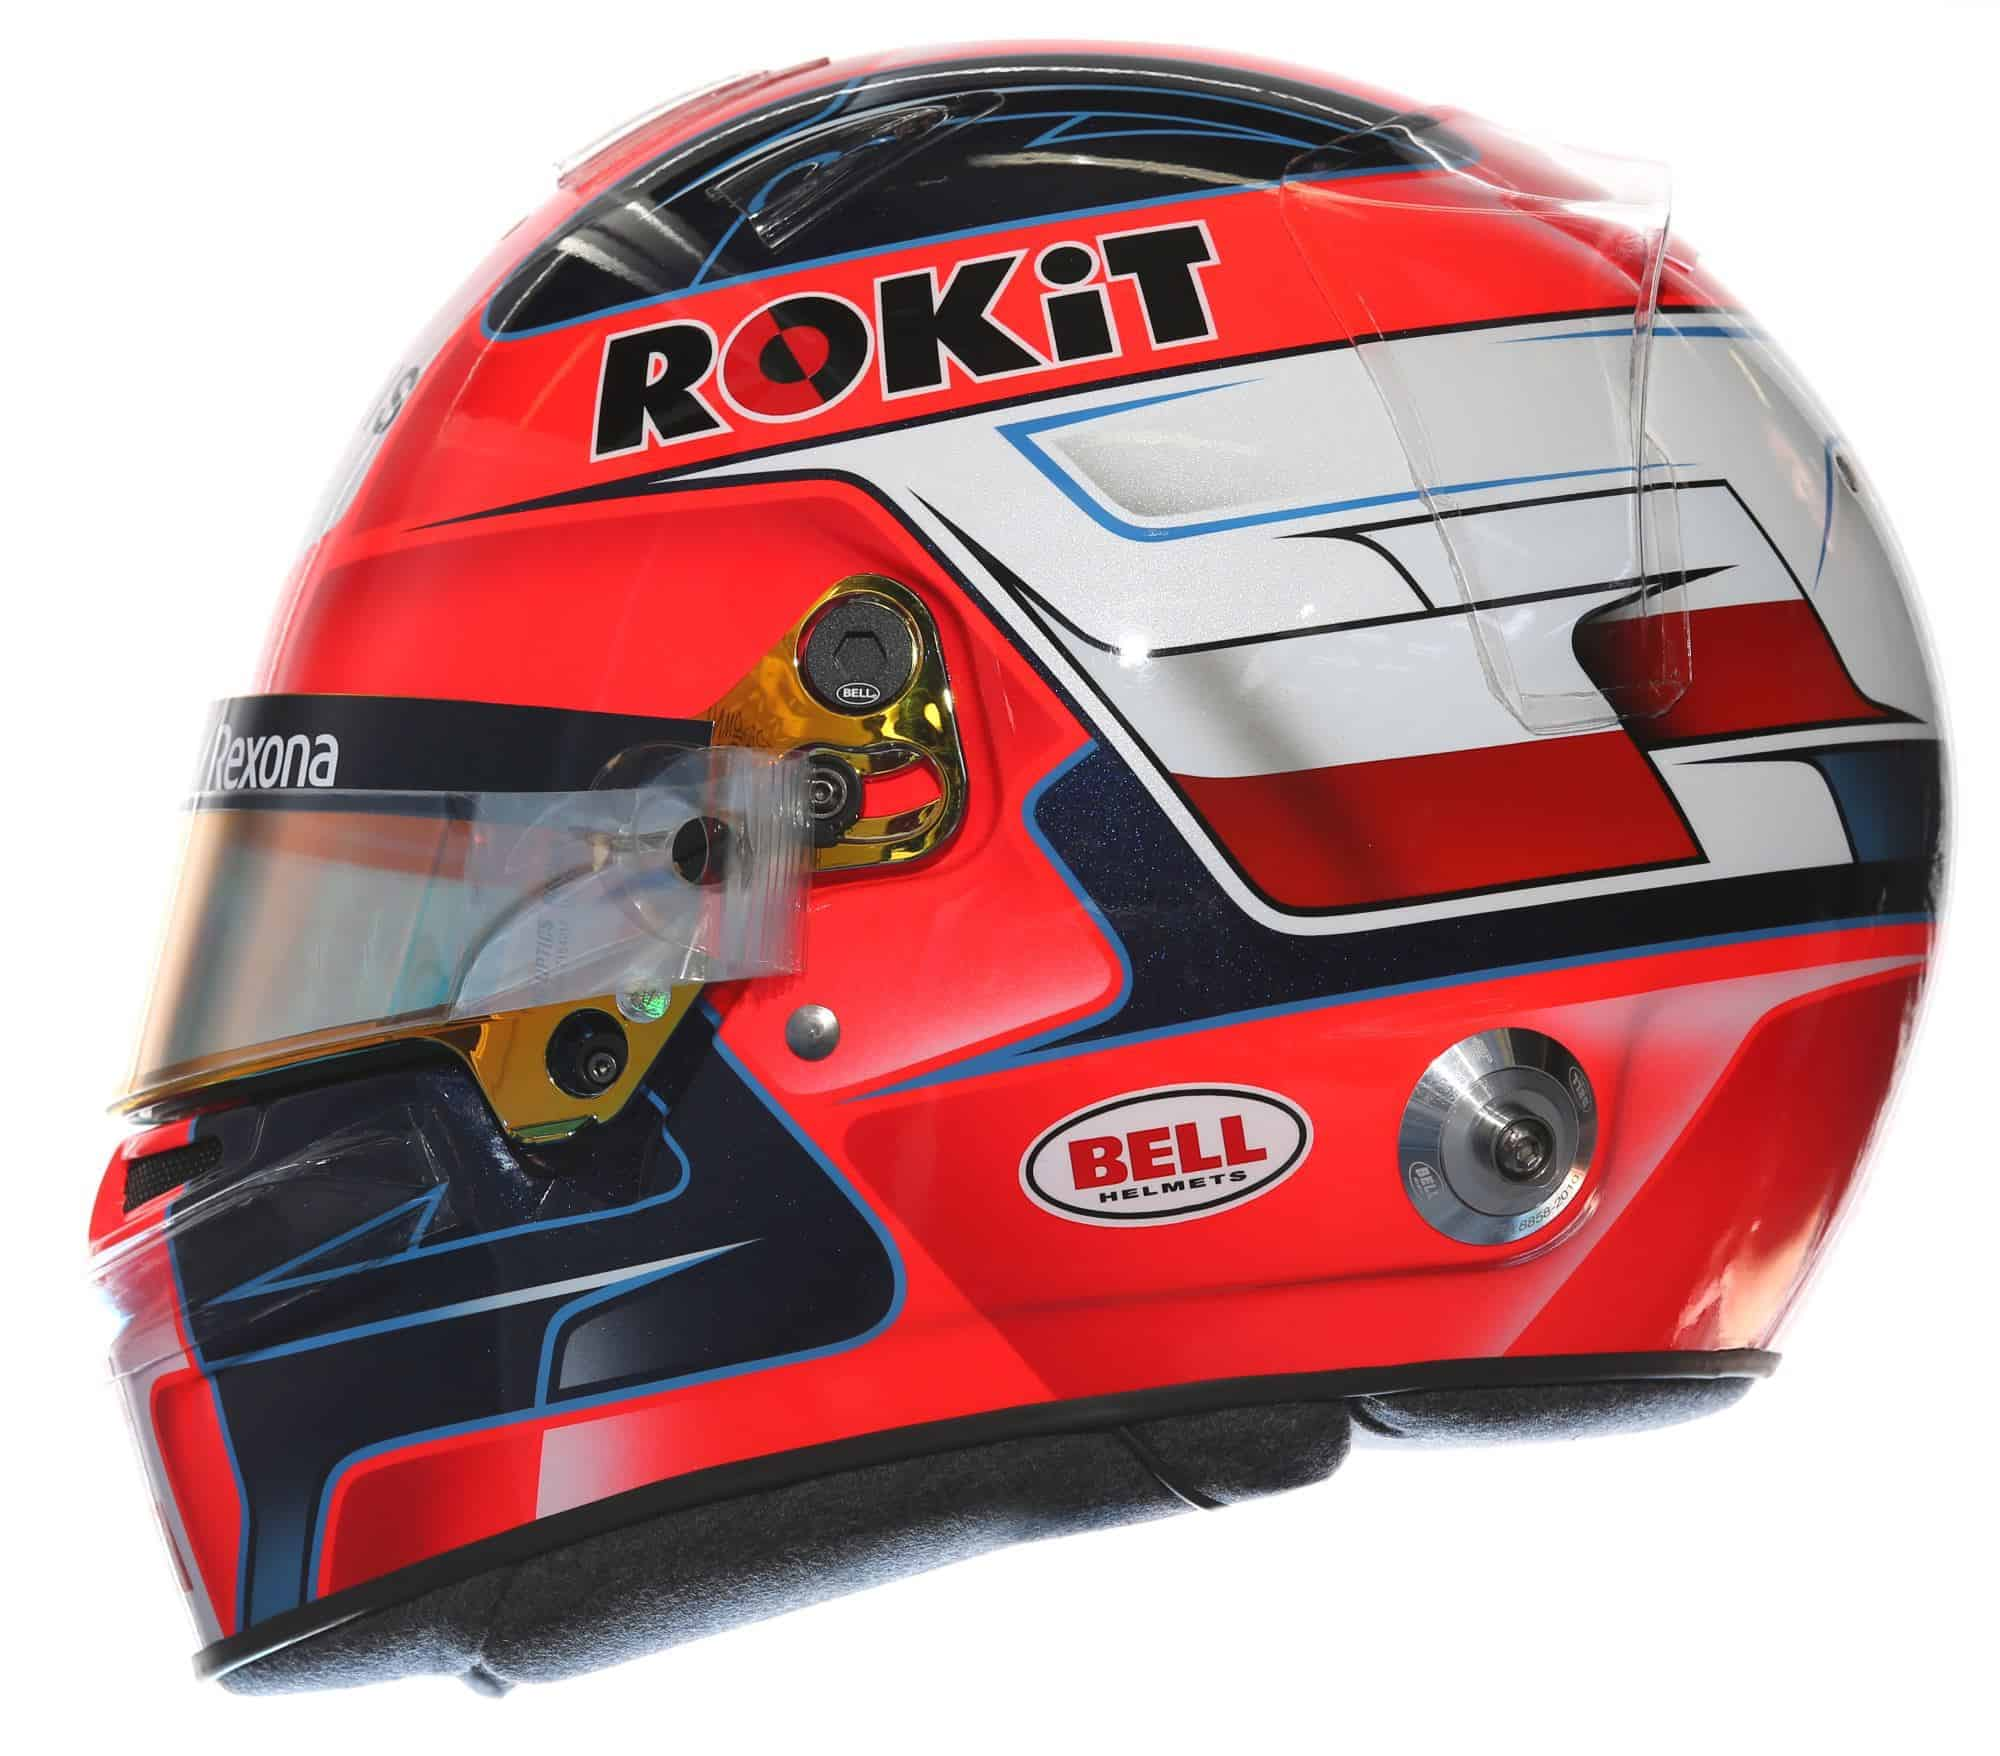 2019 Rokit Williams Racing Robert Kubica helmet left side Photo Williams Edited by MAXF1net